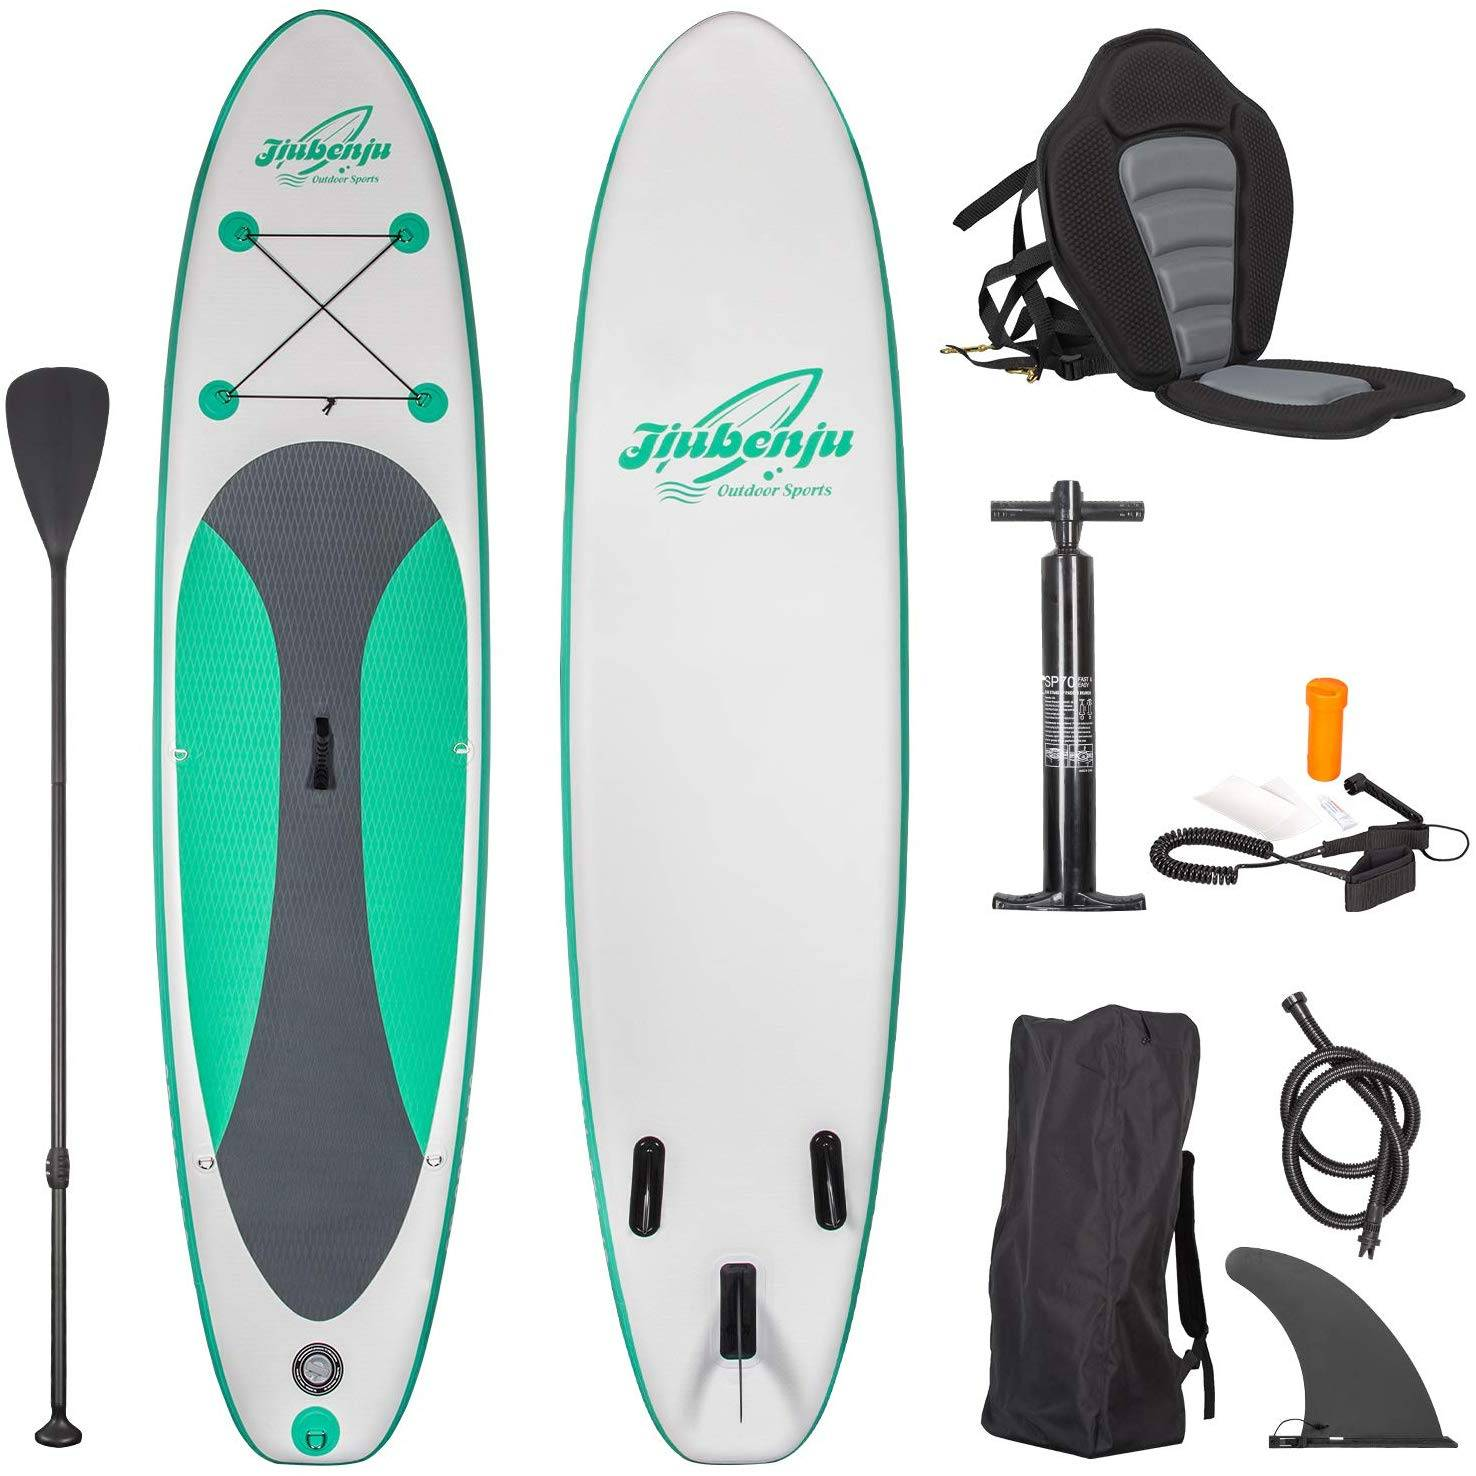 Jiubenju Inflatable Stand Up Paddle Board with Kayak Seat for Youth Adults